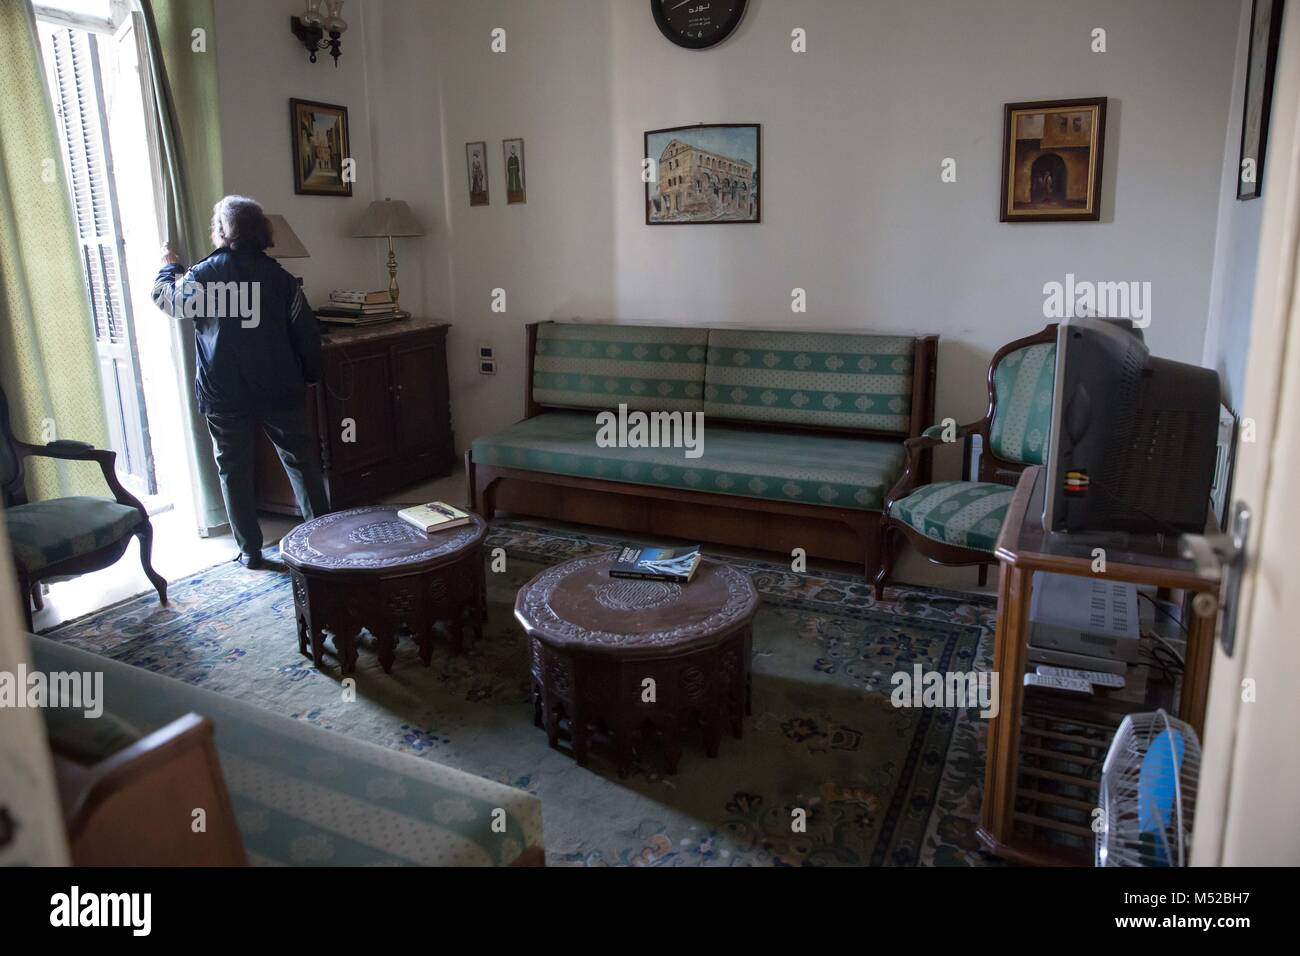 Rubina Tashjian, the widow of the last owner of Aleppo's Baron Hotel, opens the curtains in the presidential - Stock Image